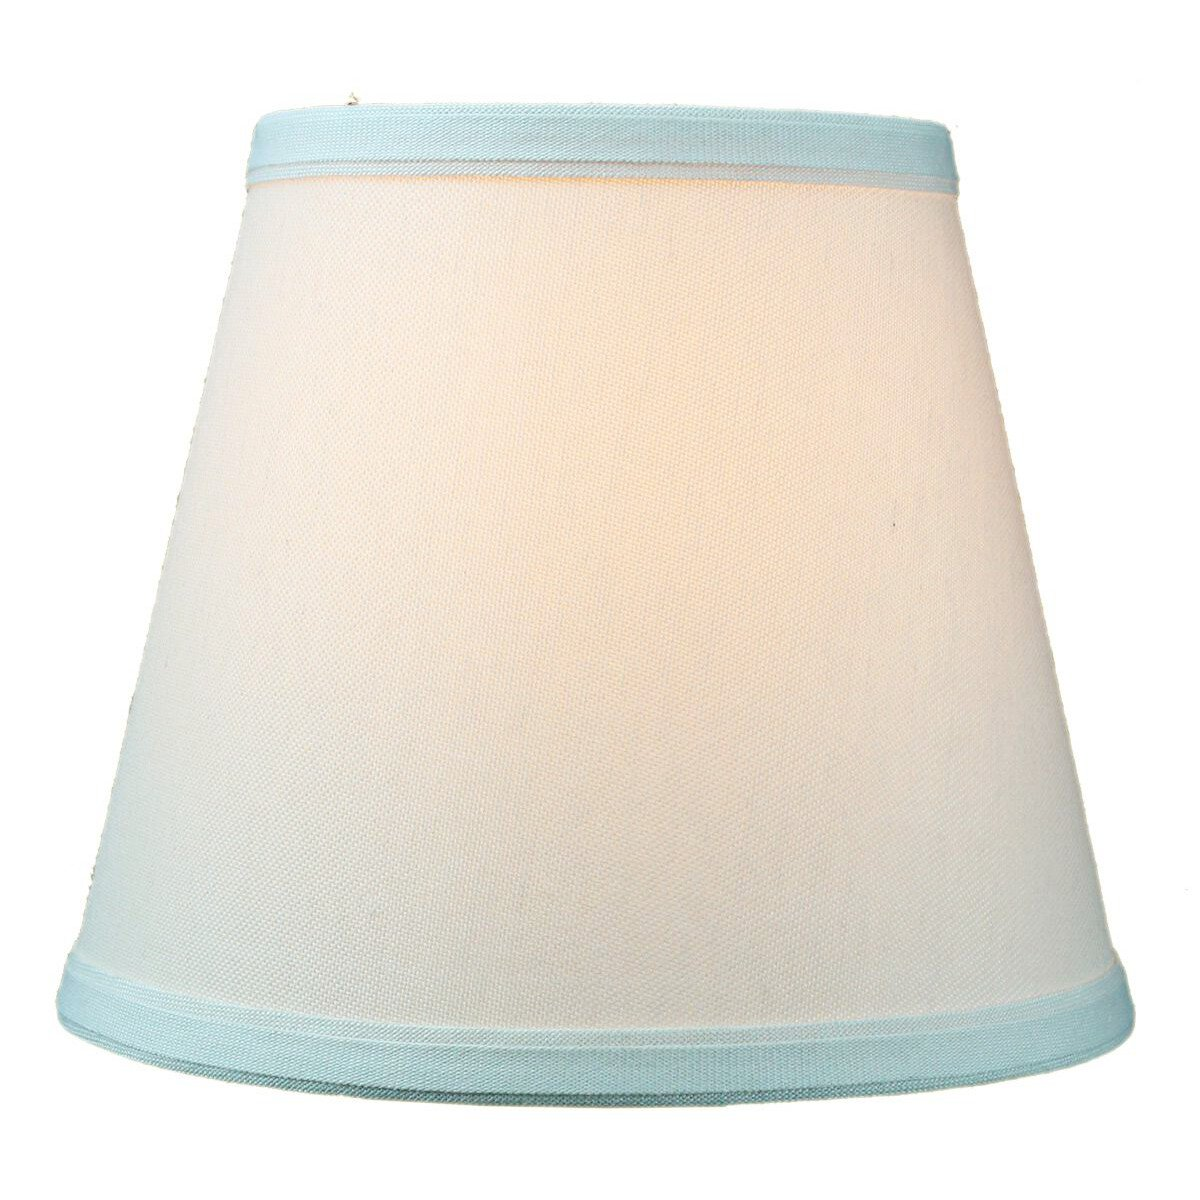 Amazon lamp shades tools home improvement - 5x8x7 Empire Linen Edison Clip On Lampshade Light Oatmeal By Home Concept Perfect For Small Table Lamps Desk Lamps And Accent Lights Small